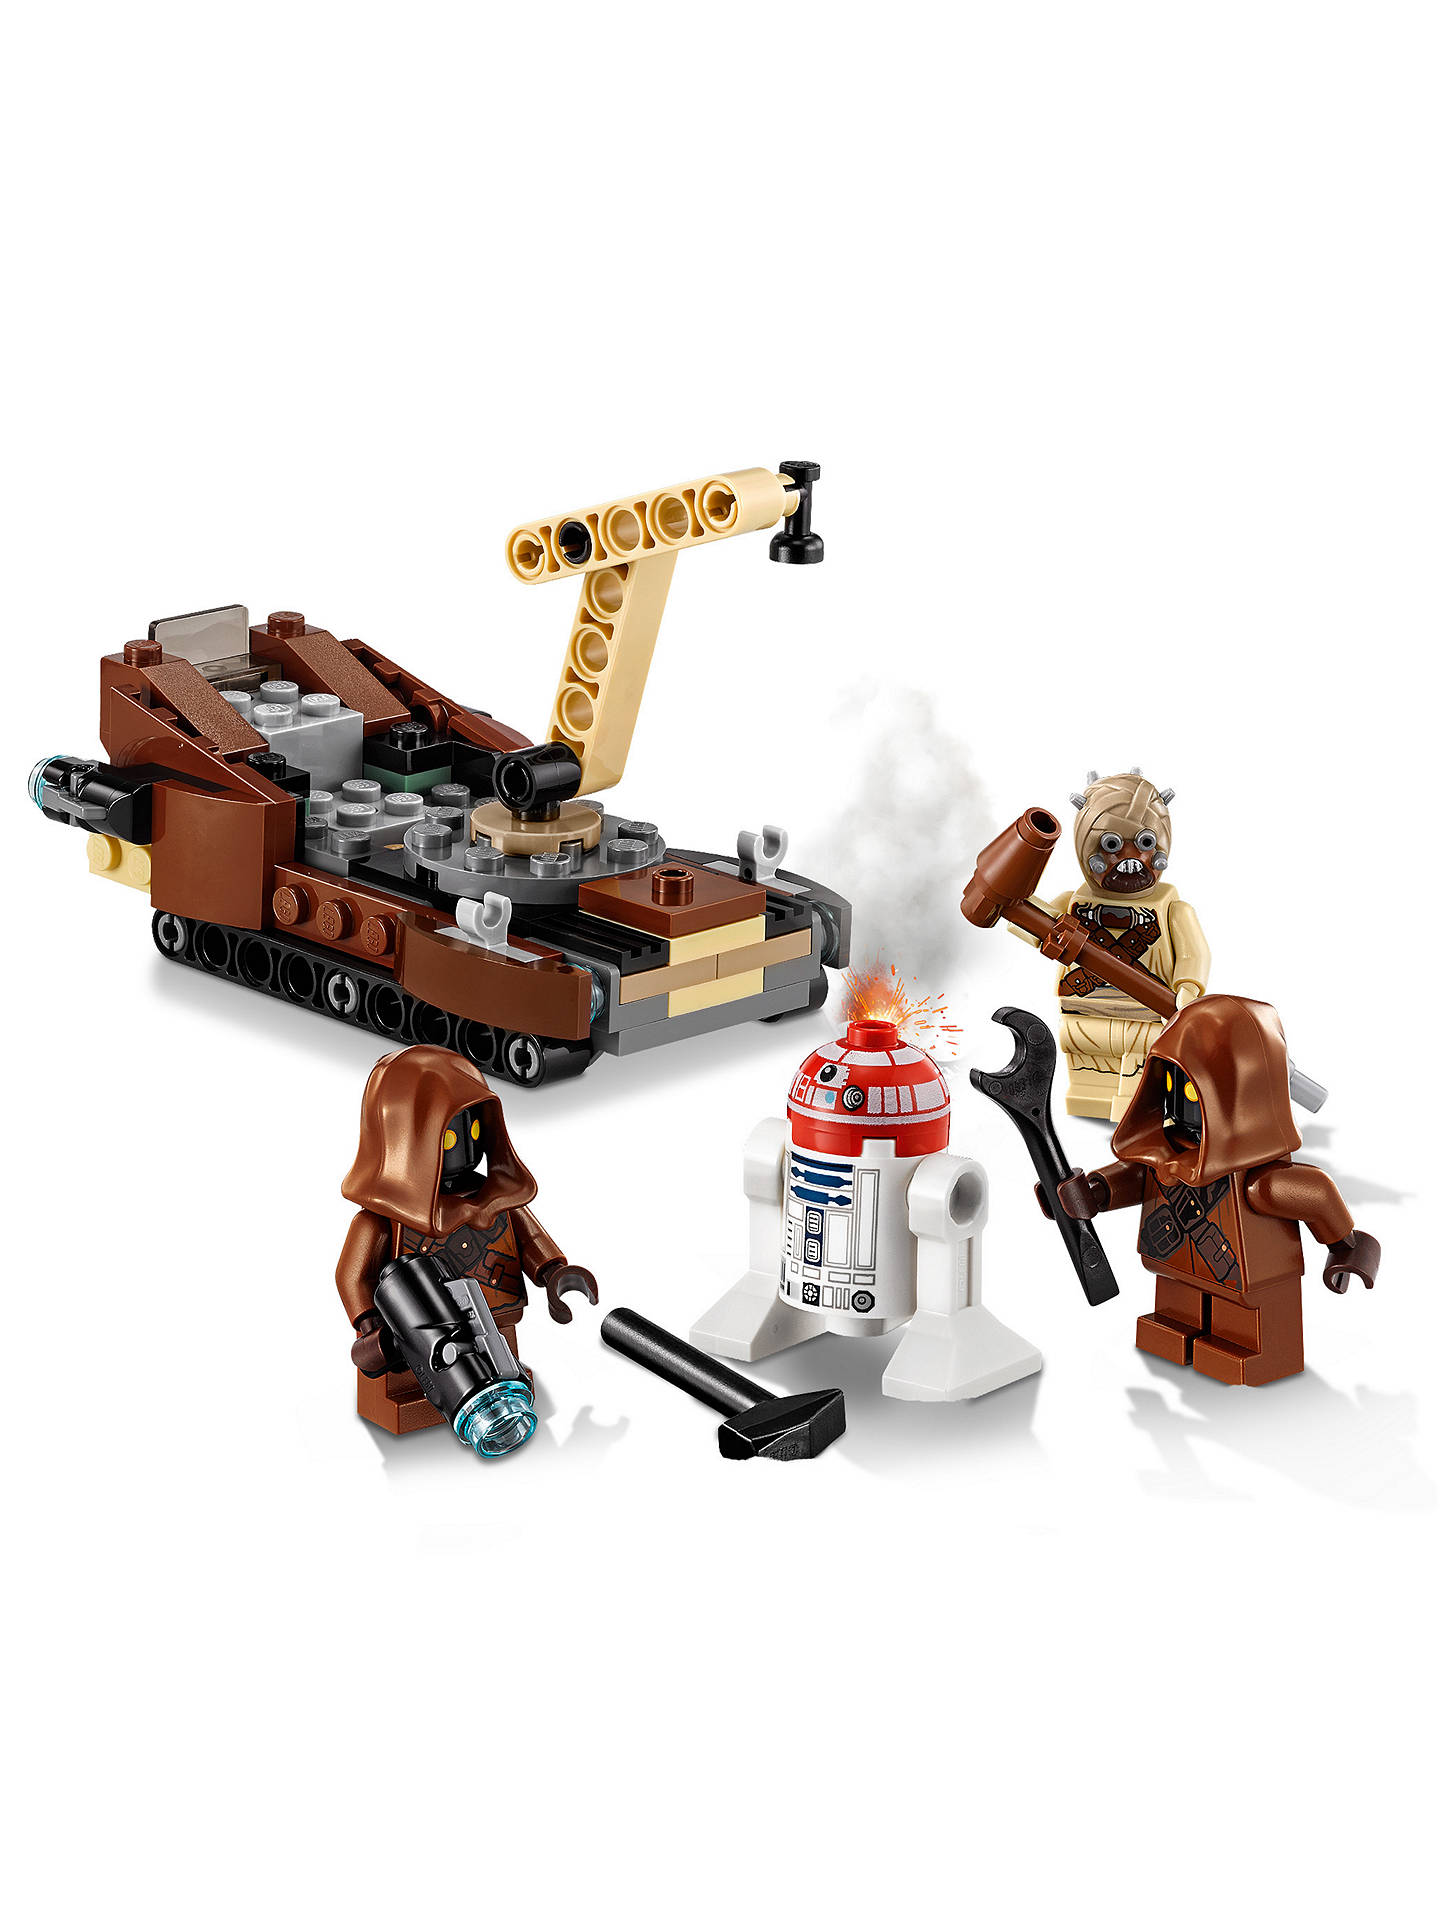 New Release For 2018! 75198 LEGO Star Wars Tatooine Battle Pack 97 Pieces Age 6